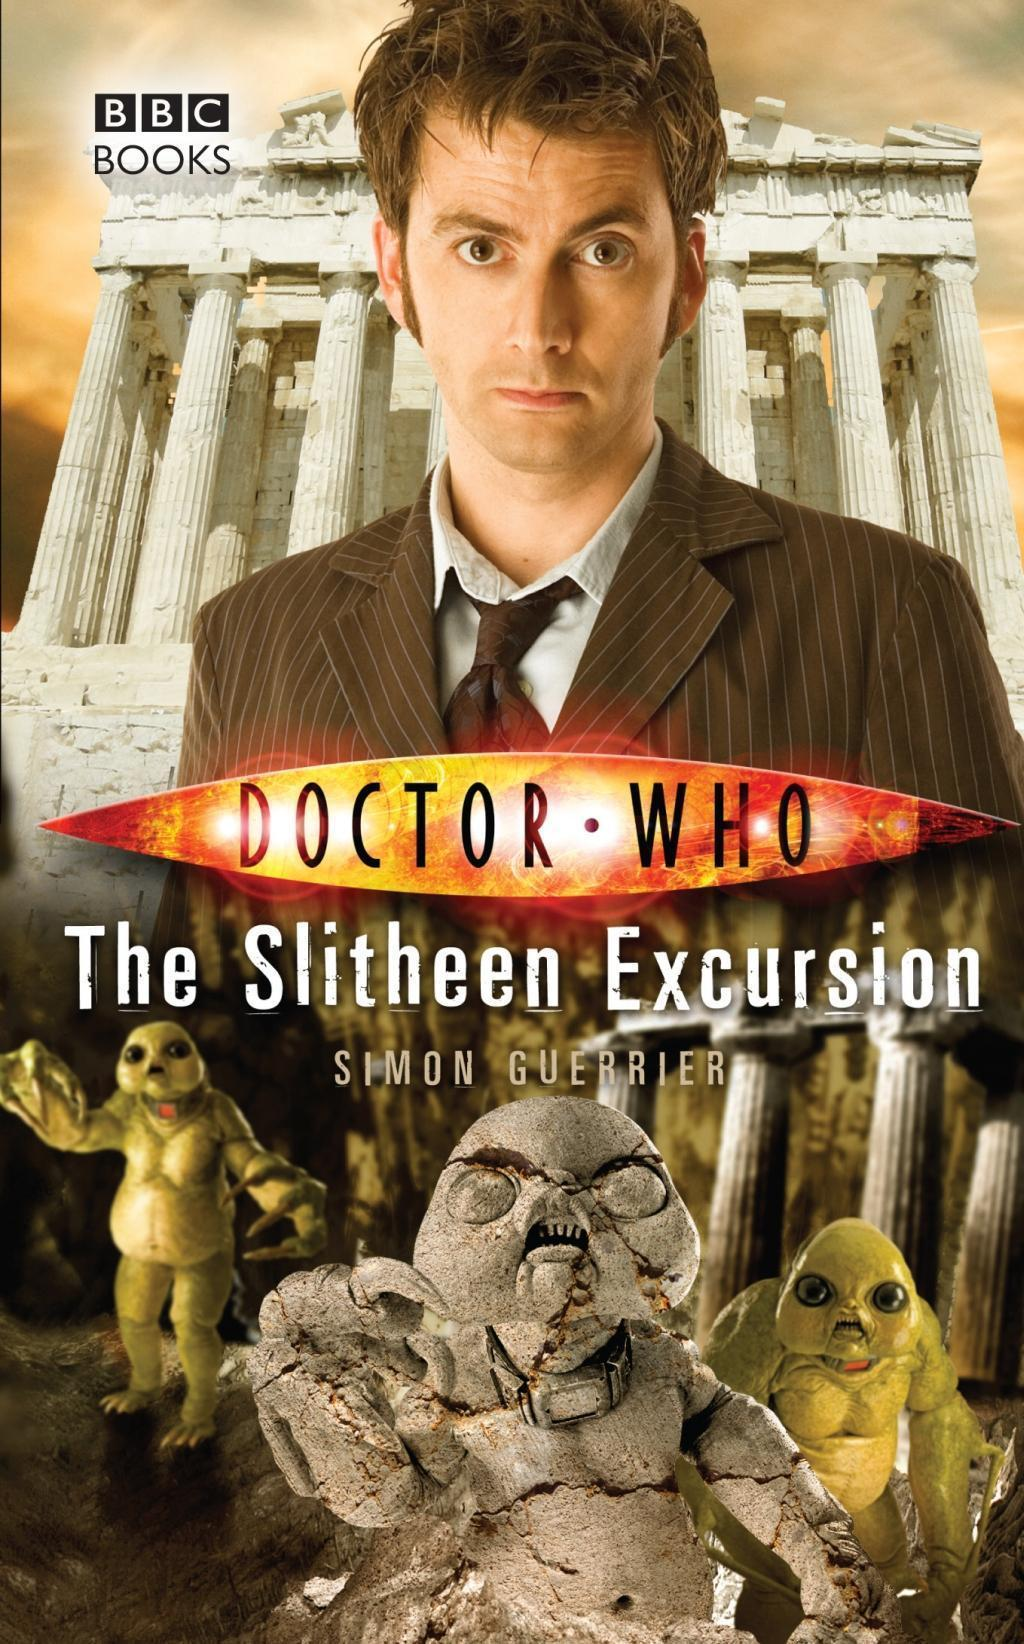 Doctor Who: The Slitheen Excursion